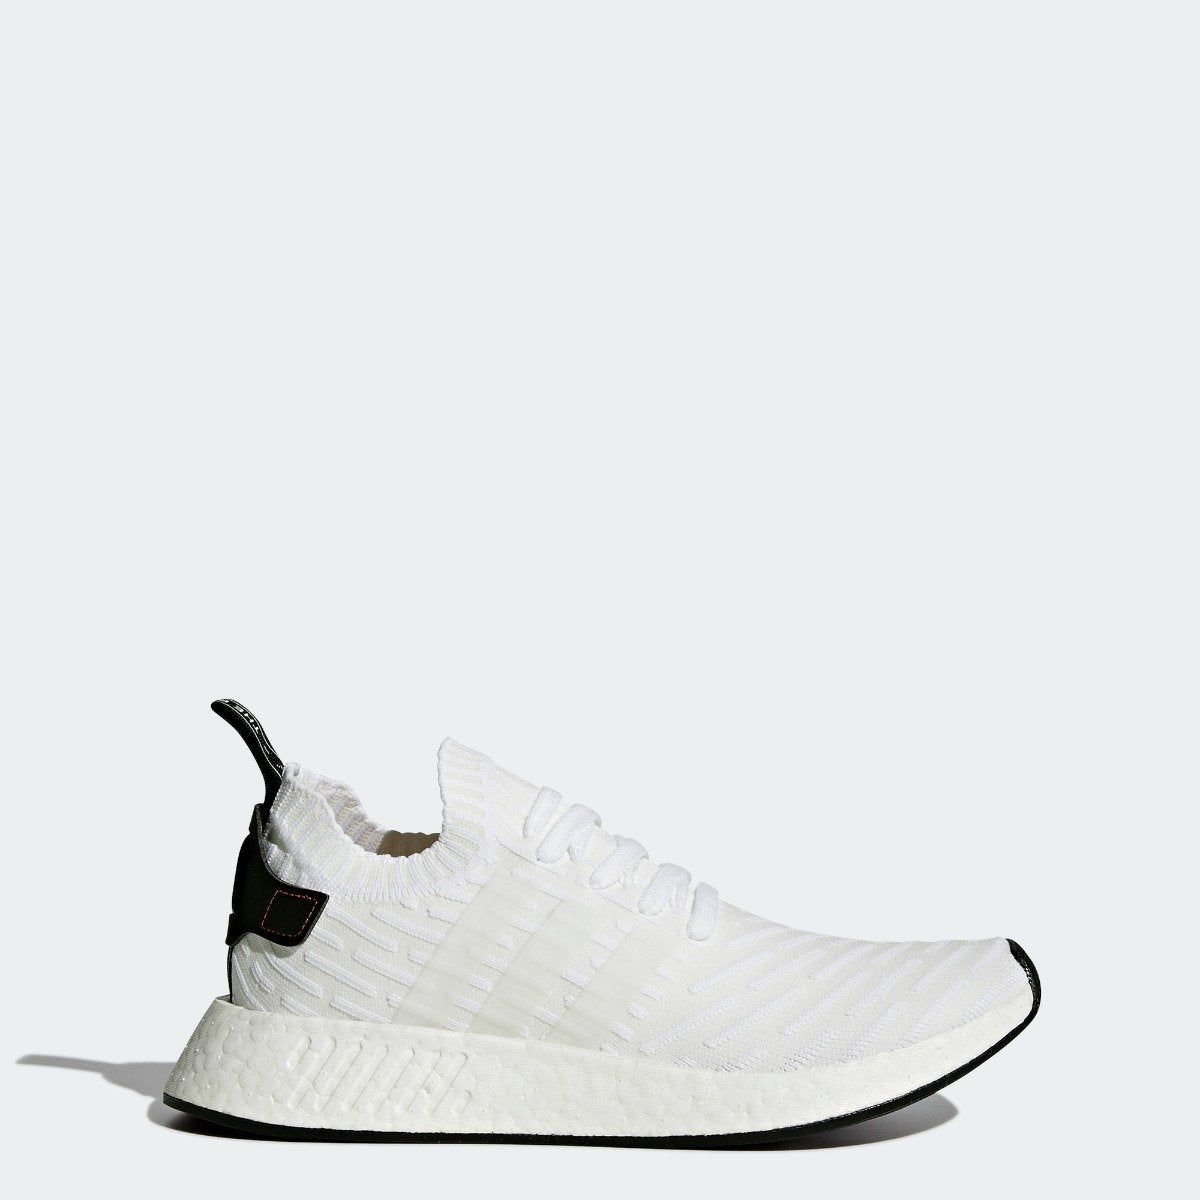 designer fashion 73d77 e3192 Men's adidas Originals NMD R2 Primeknit Shoes White with ...